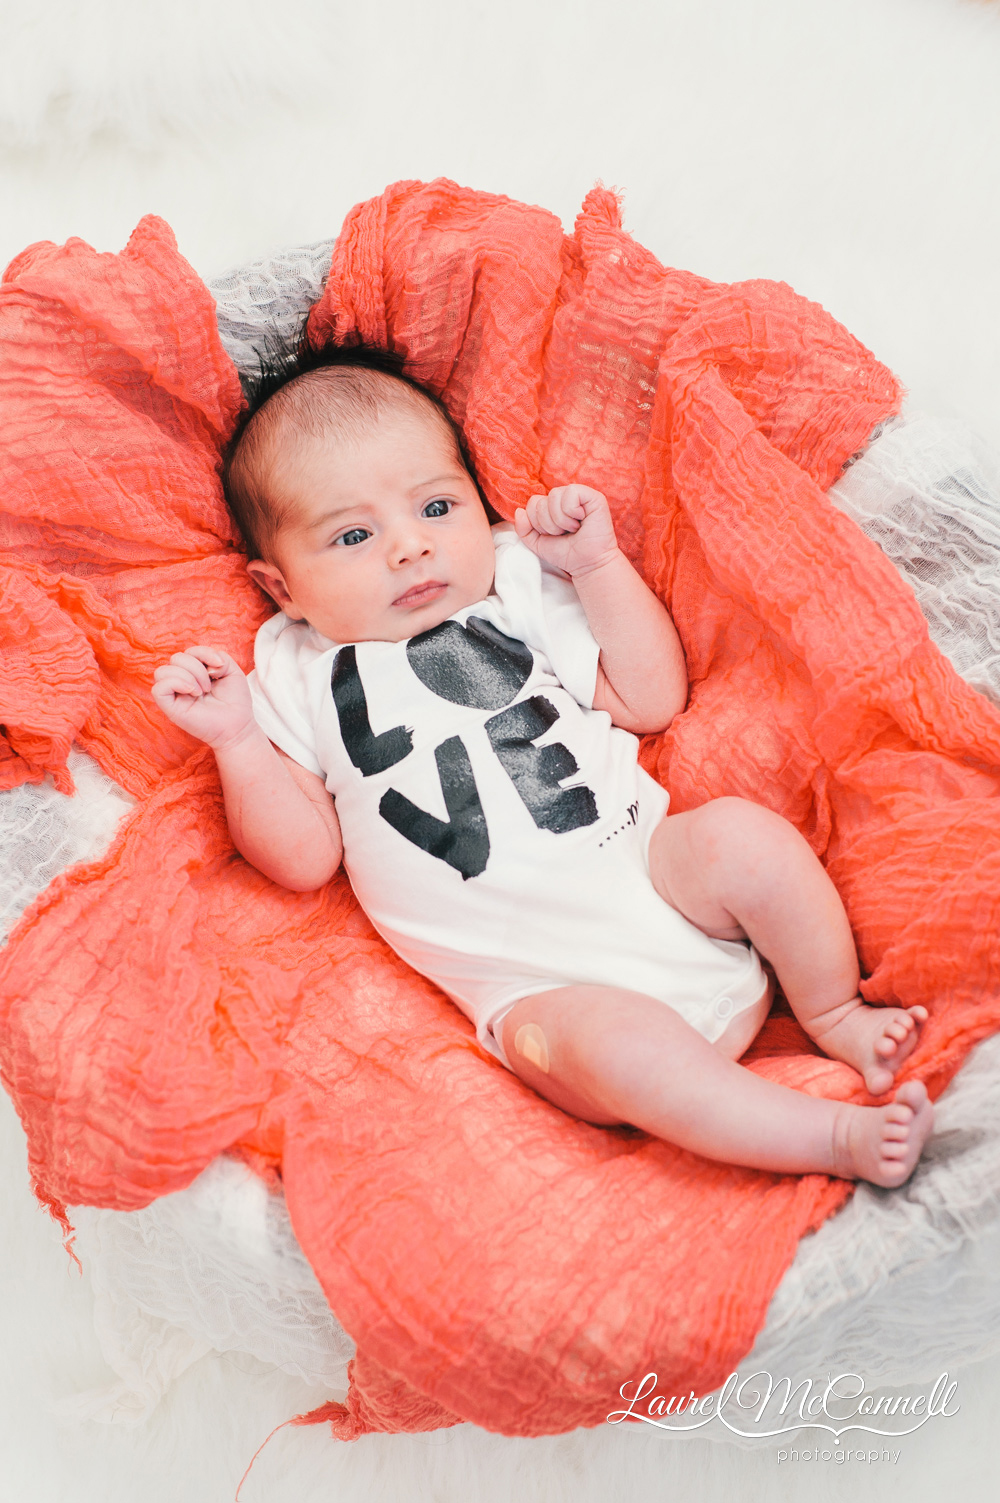 Fun newborn portrait taken during family photography session.